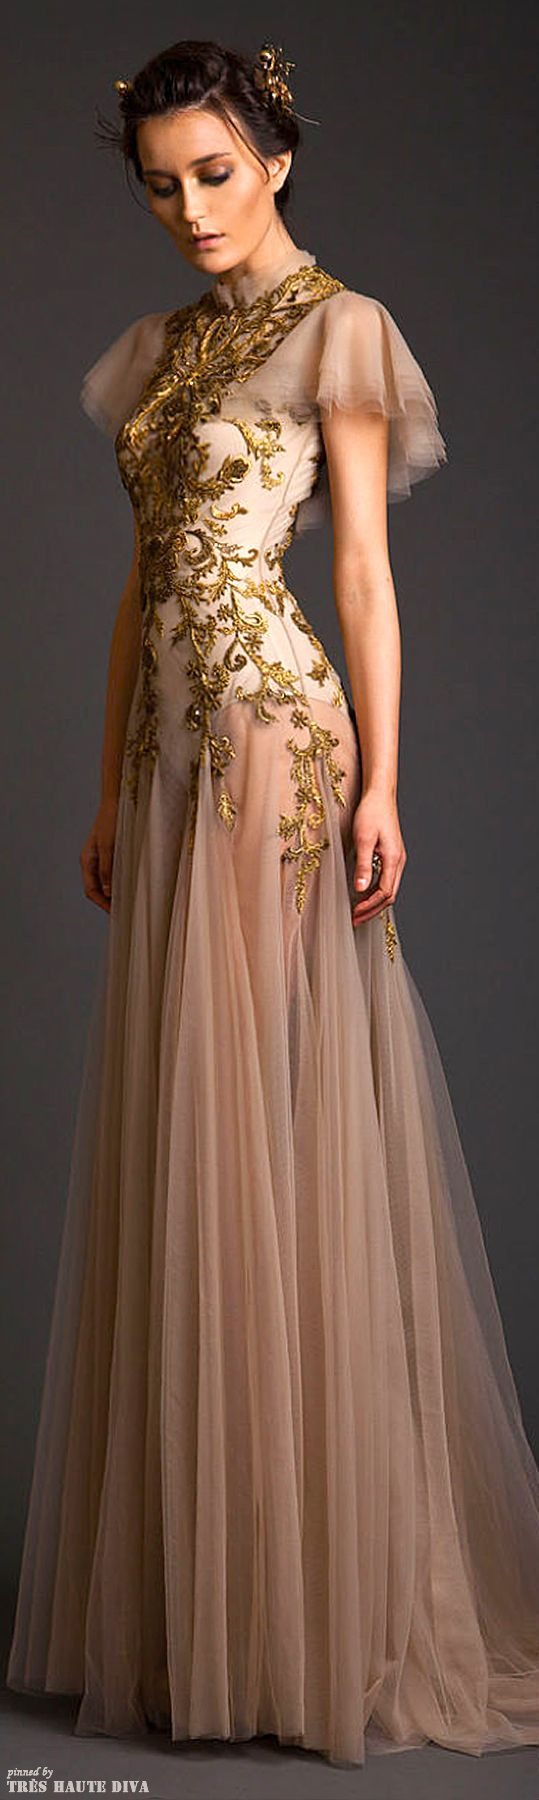 WOW! I'm putting this on my Steampunk board cuz I think it has some amazing possibilities! ==> Krikor Jabotian Couture S/S 2014.